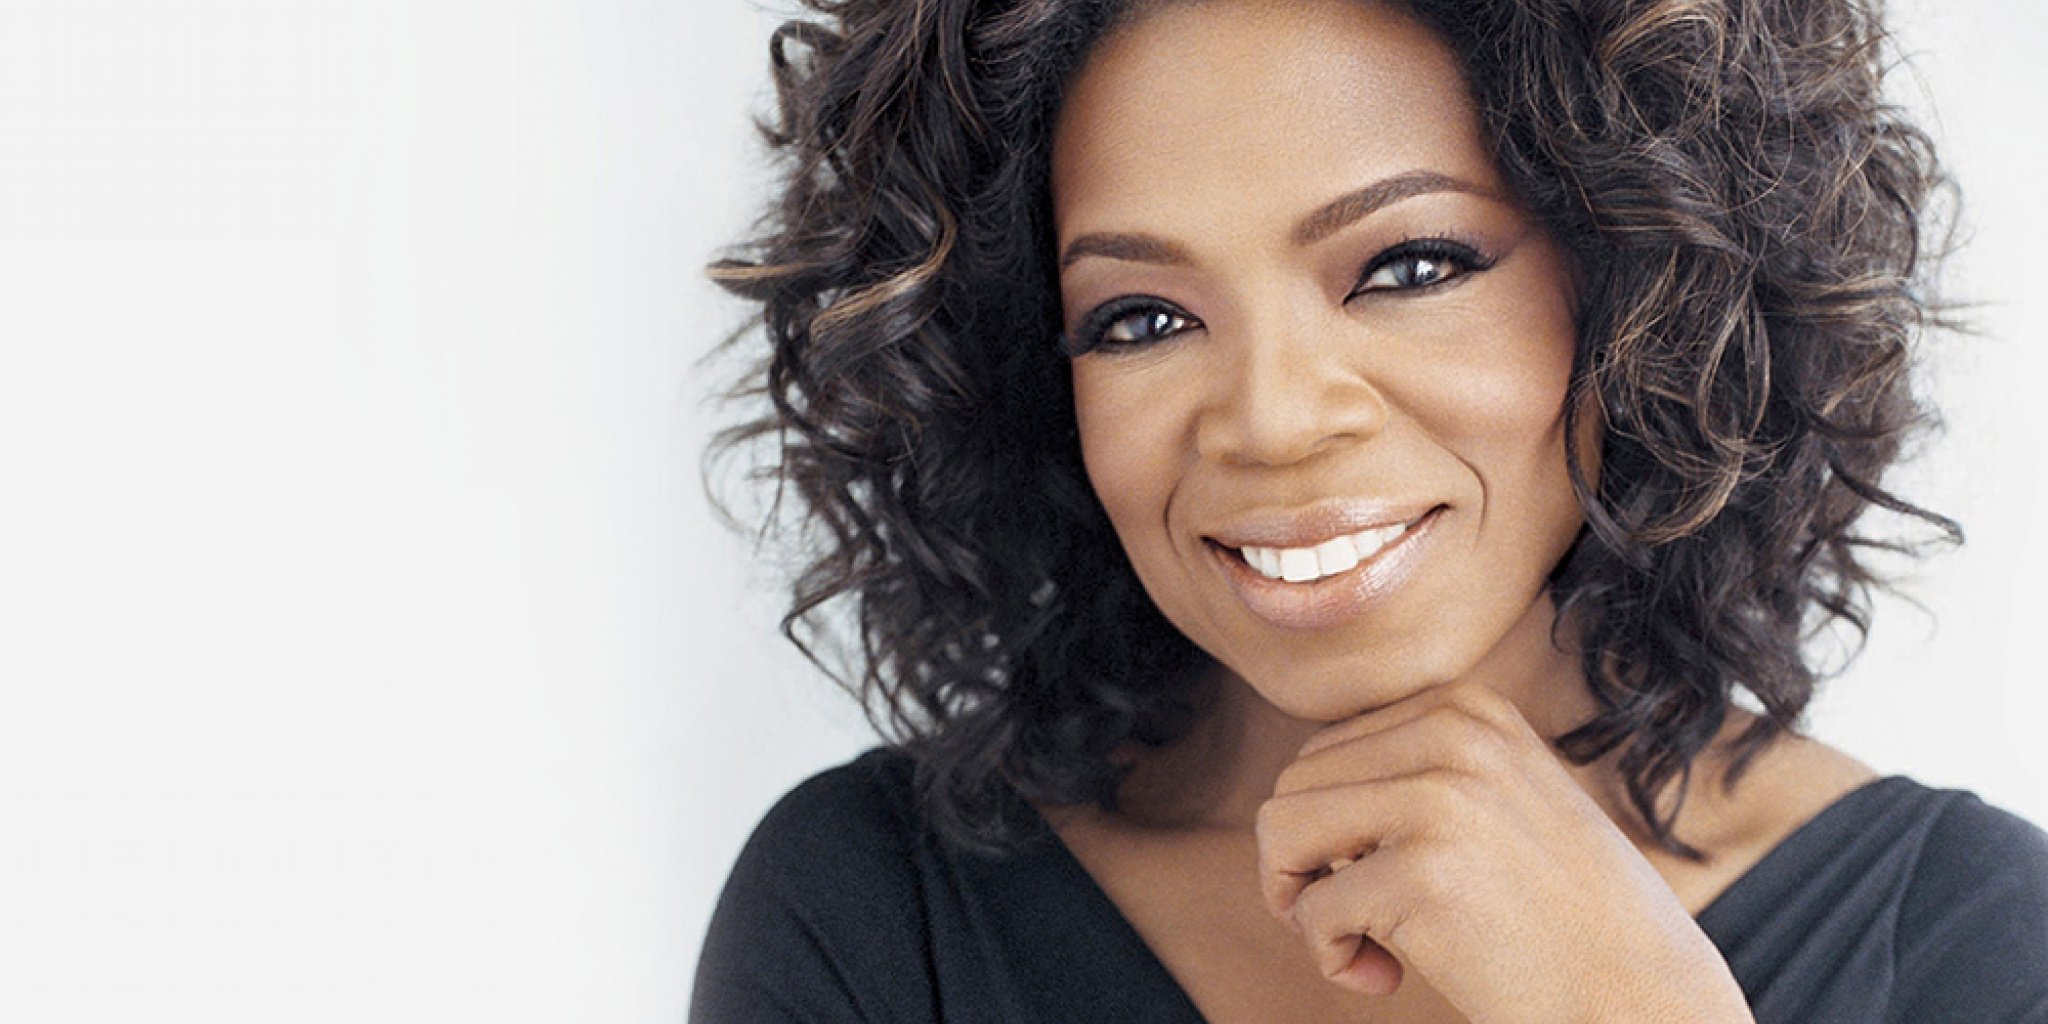 Oprah Winfrey Speaks On Mother's Loss